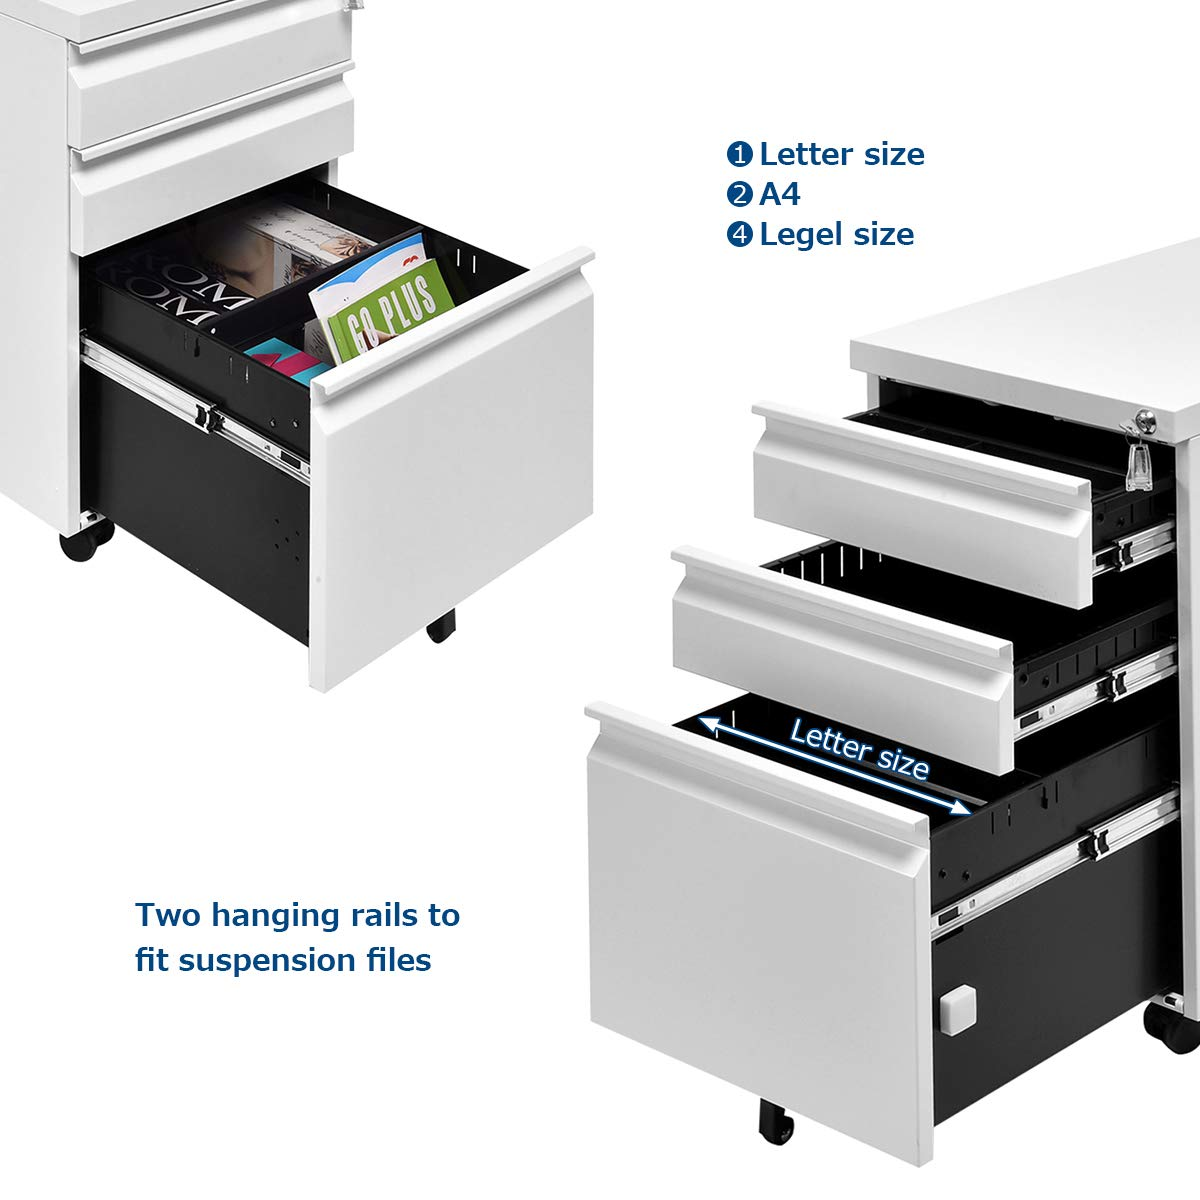 Giantex Rolling Mobile File W/3 Lockable Drawers and Pedestal for Office Study Room Home Steel Storage Cabinet (White) by Giantex (Image #4)